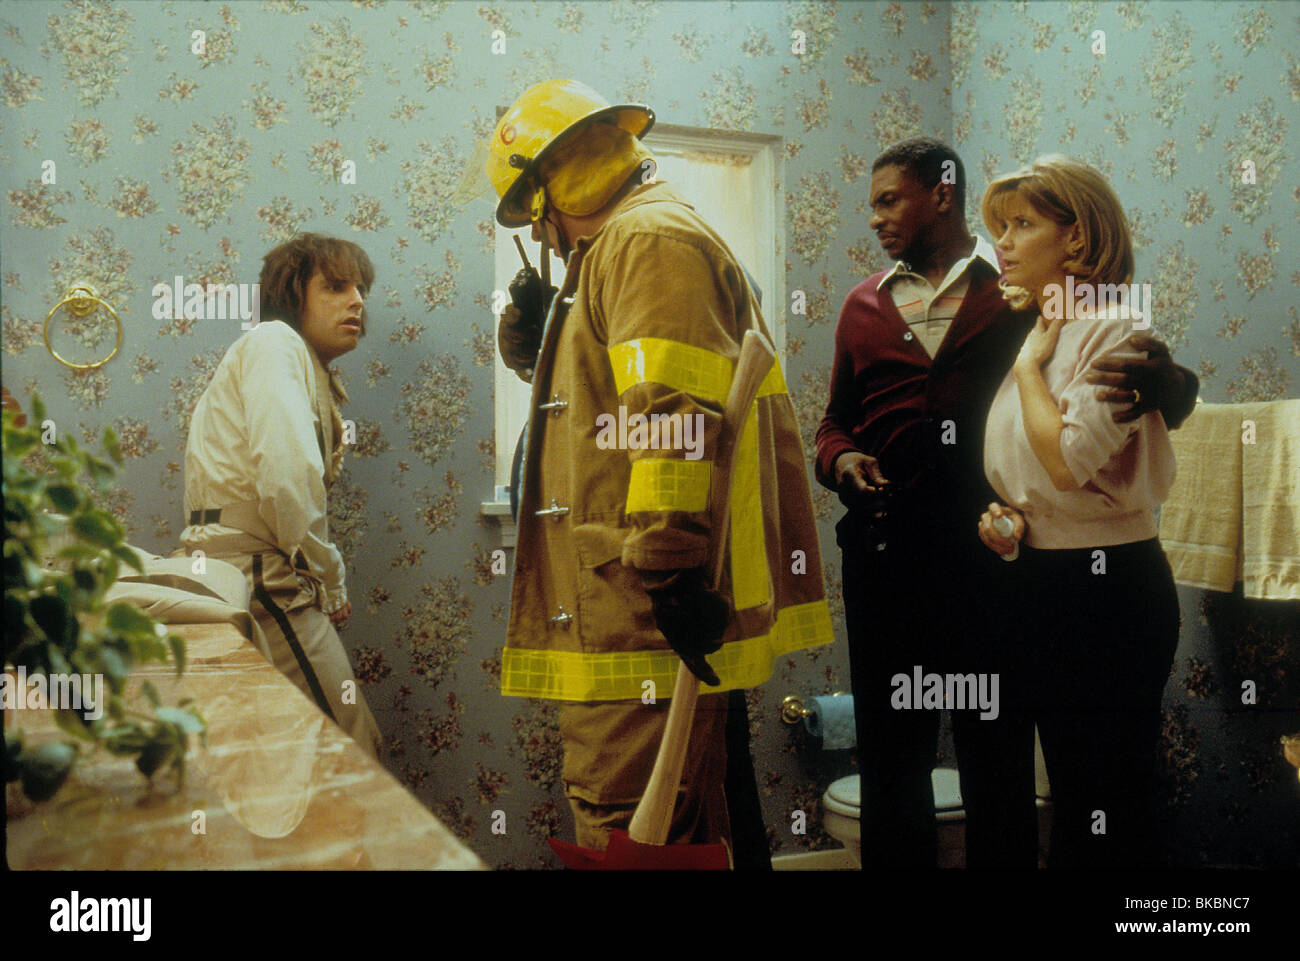 THERE'S SOMETHING ABOUT MARY BEN STILLER, KEITH DAVID, MARKIE POST TSAM 069 ORIGINAL 35MM - Stock Image